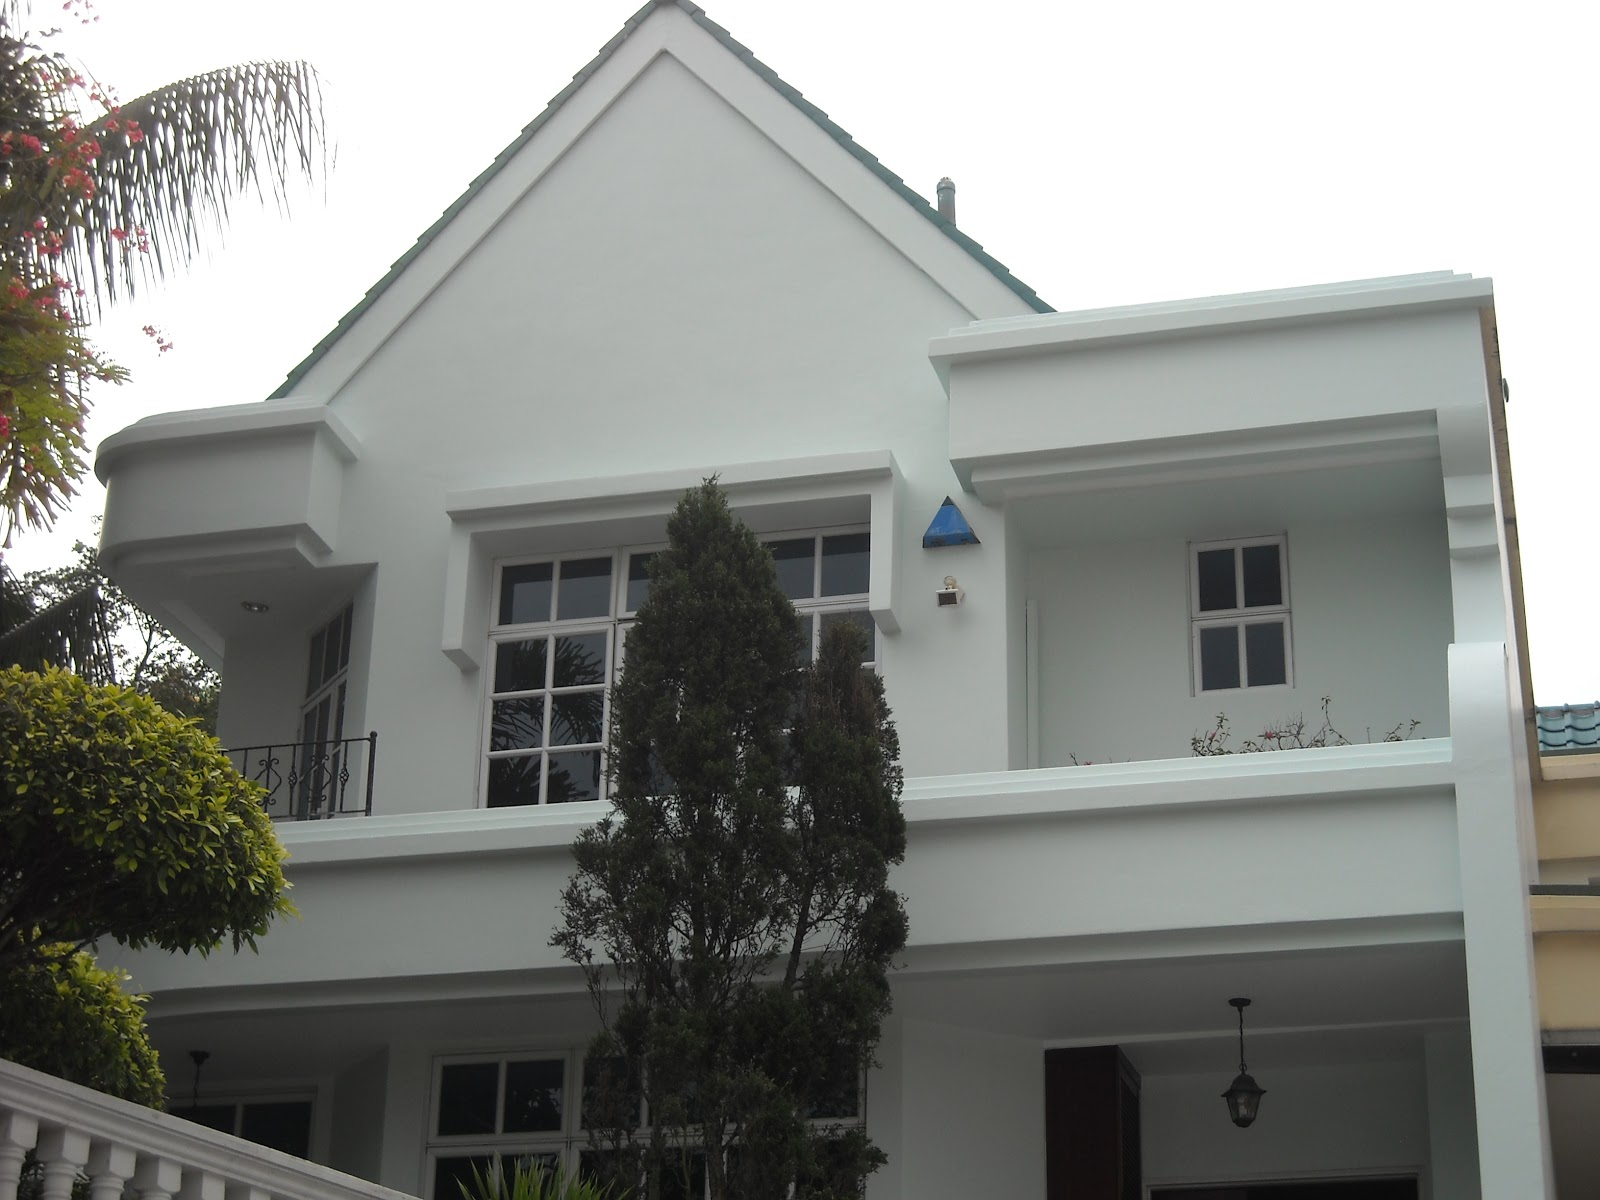 Pro House Painting & Handyman work: Exterior Wall Painting